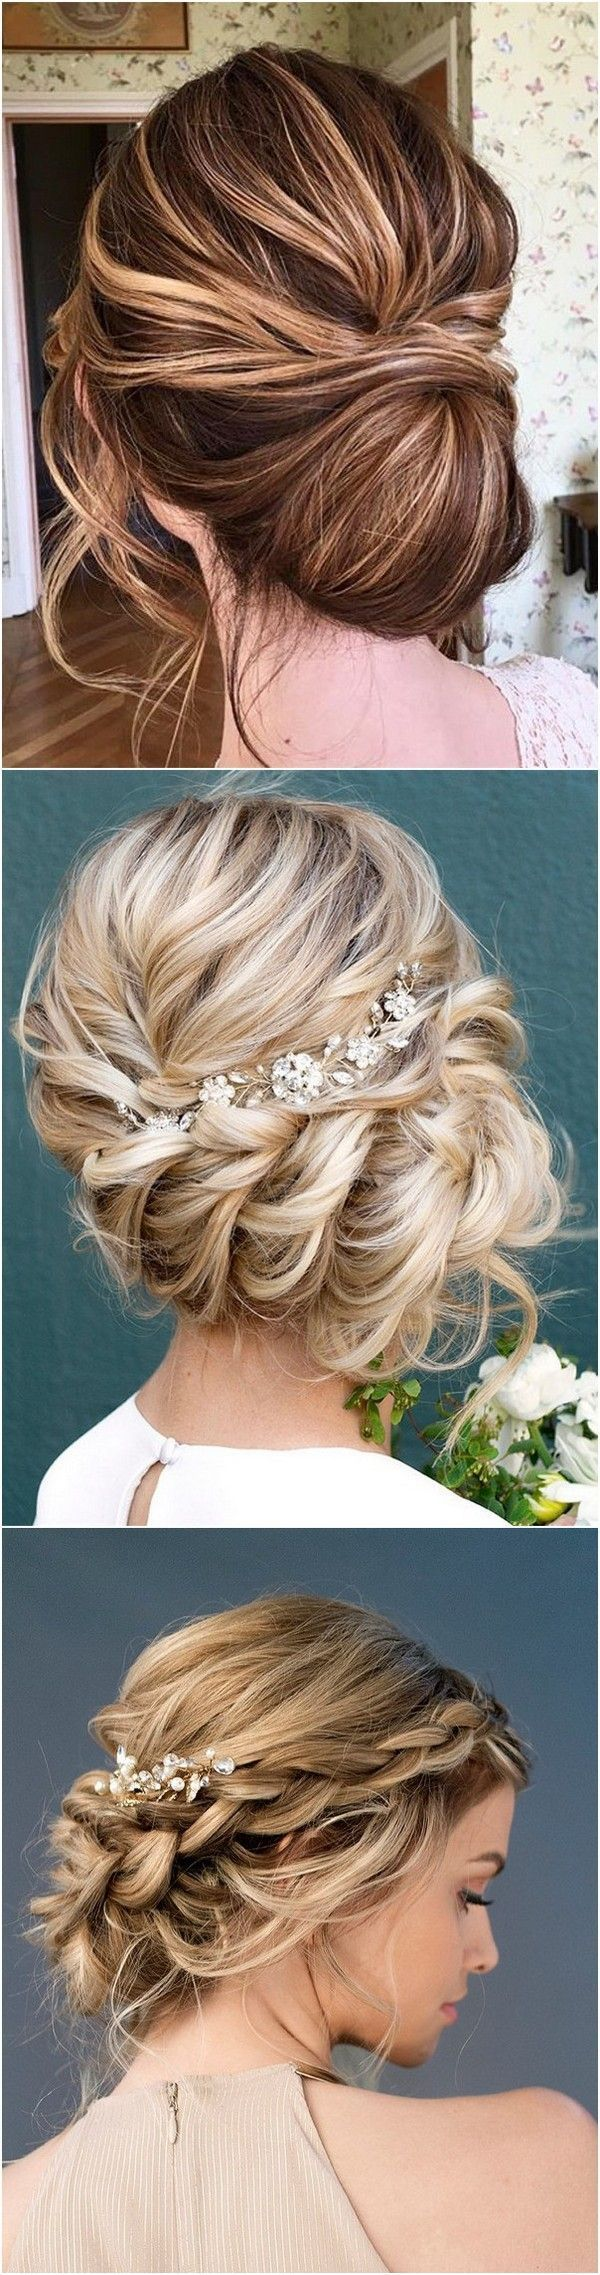 updo wedding hairstyles for 2018 by Steph 2 #bridalfashion #weddinghairstyle #updohairstyle #bridalhairstyles #weddingideas #weddinghairstyles